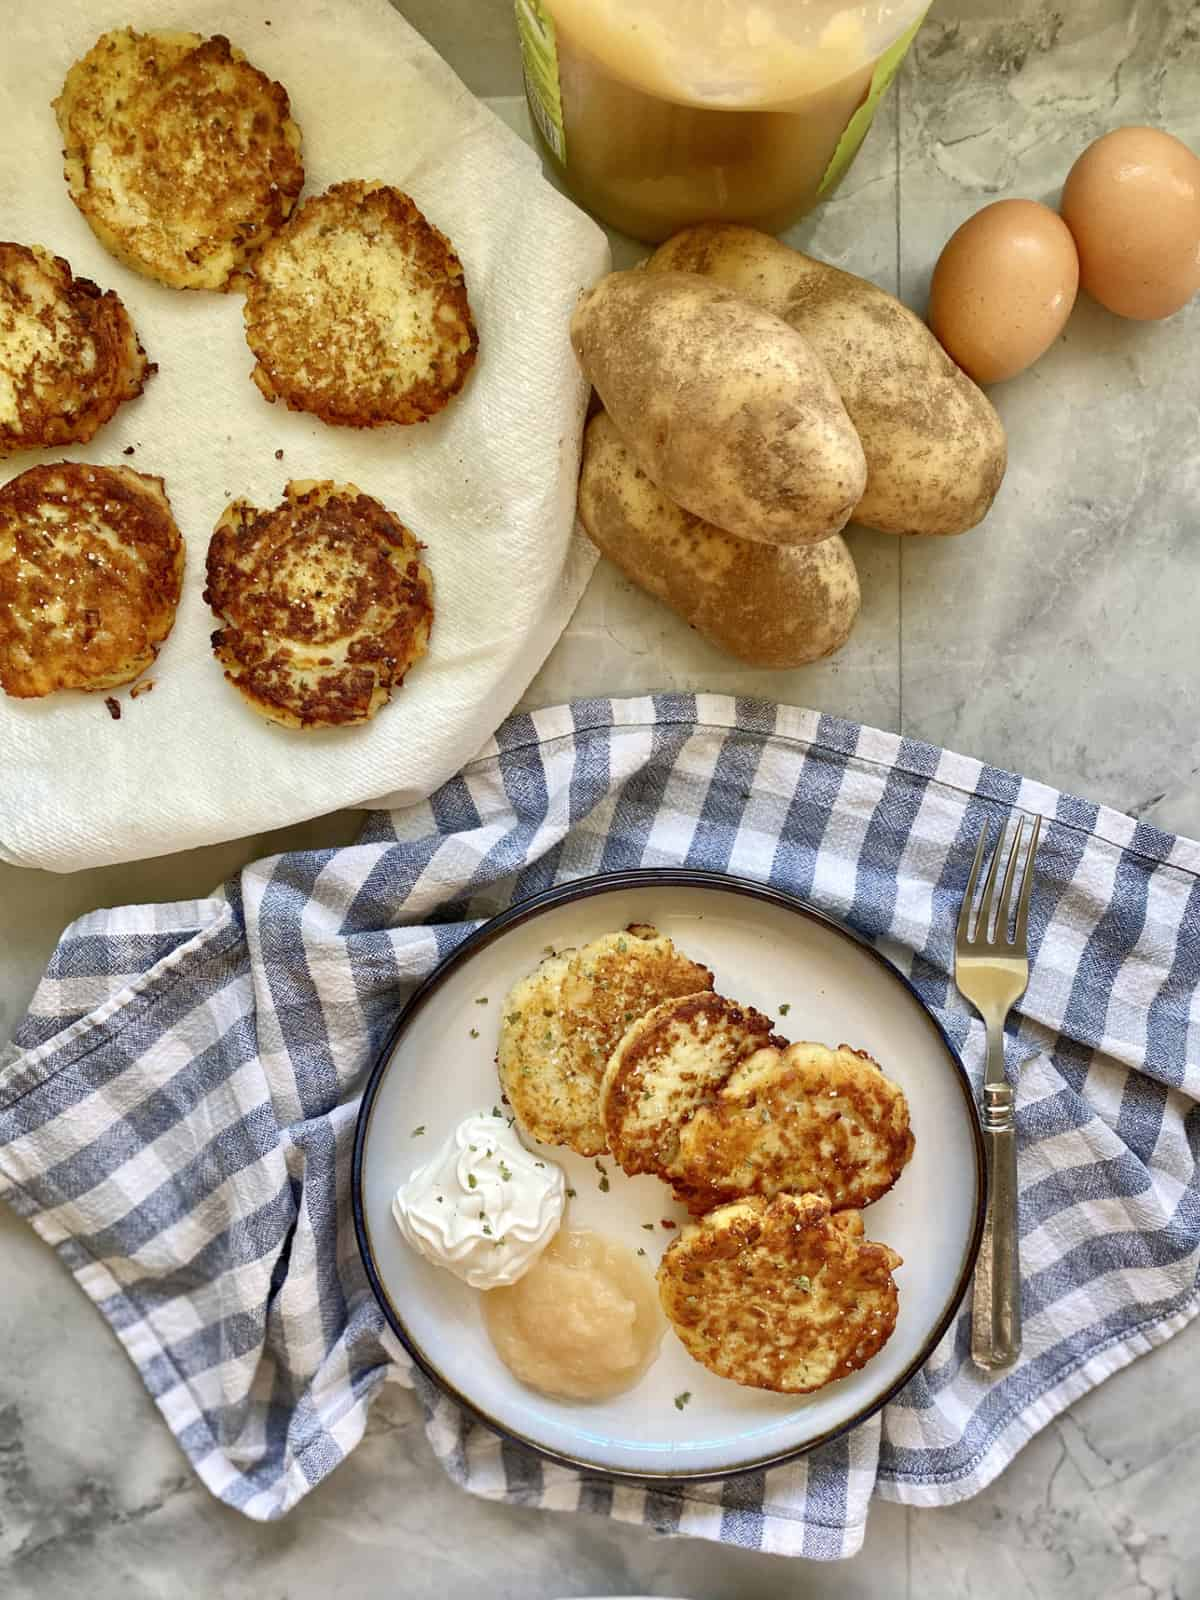 Top viiew of potato pancakes on a plate with potatoes and eggs near by.